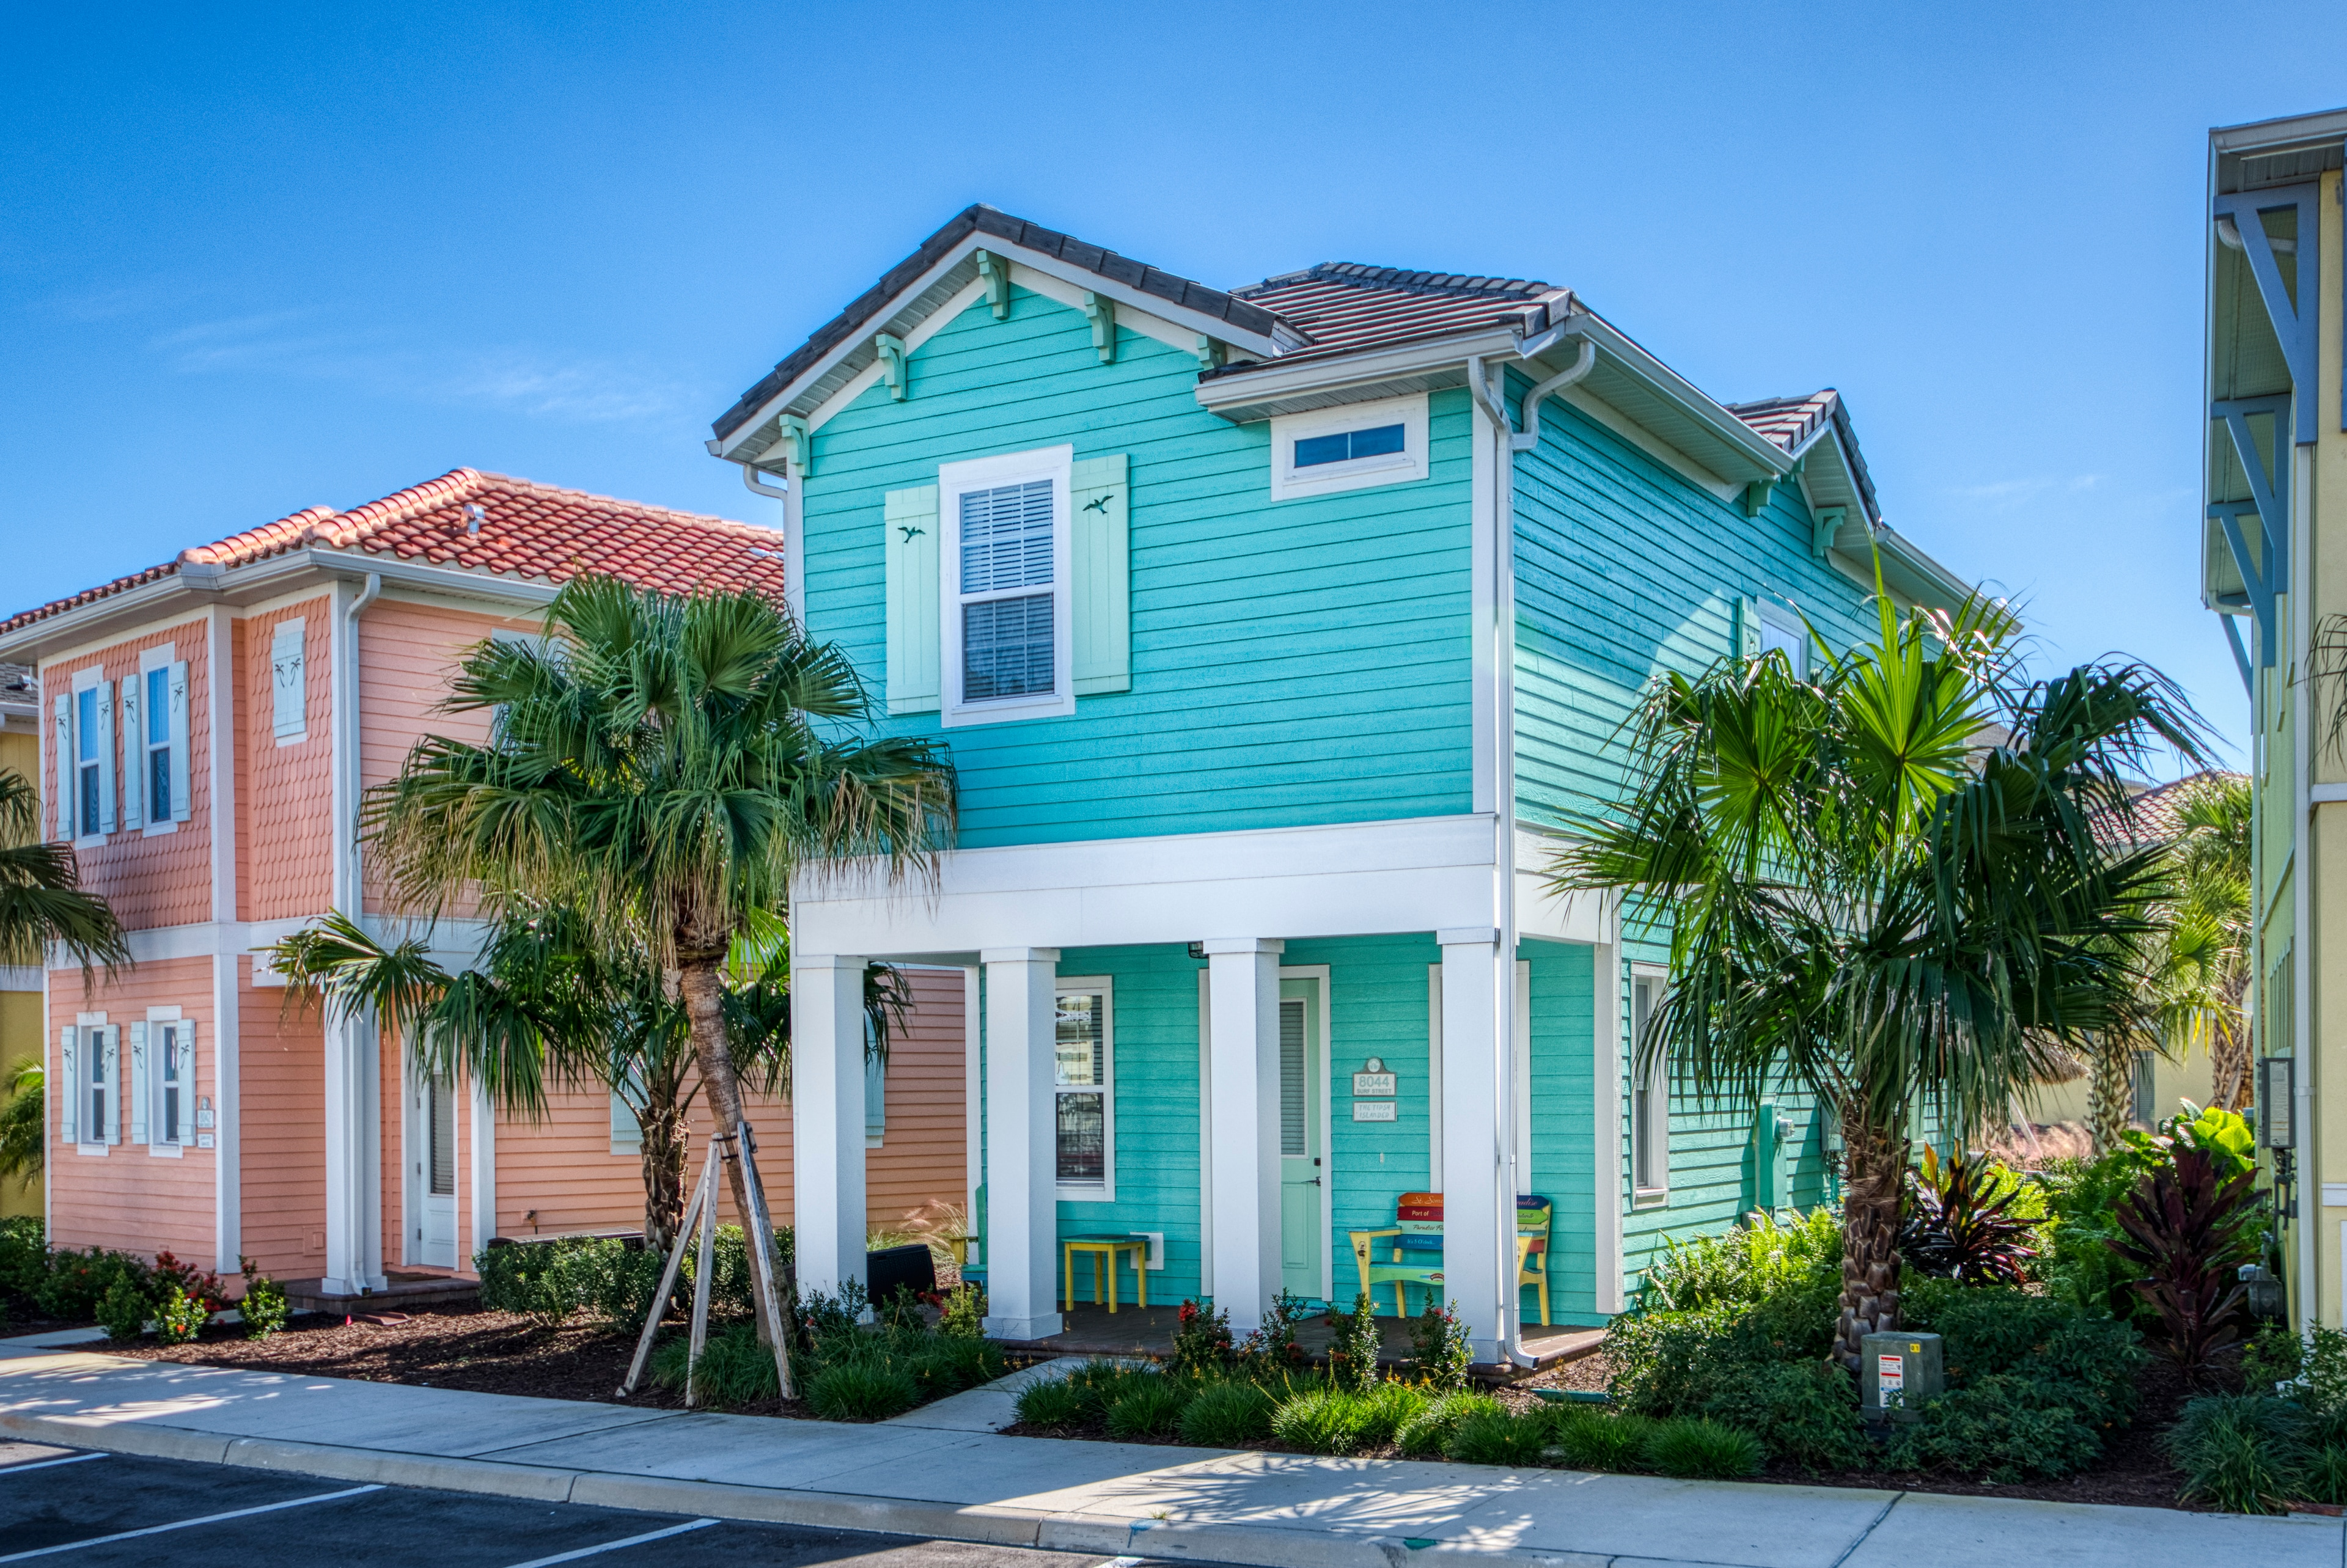 Property Image 1 - Bright Cottage near Disney World with Hotel Amenities